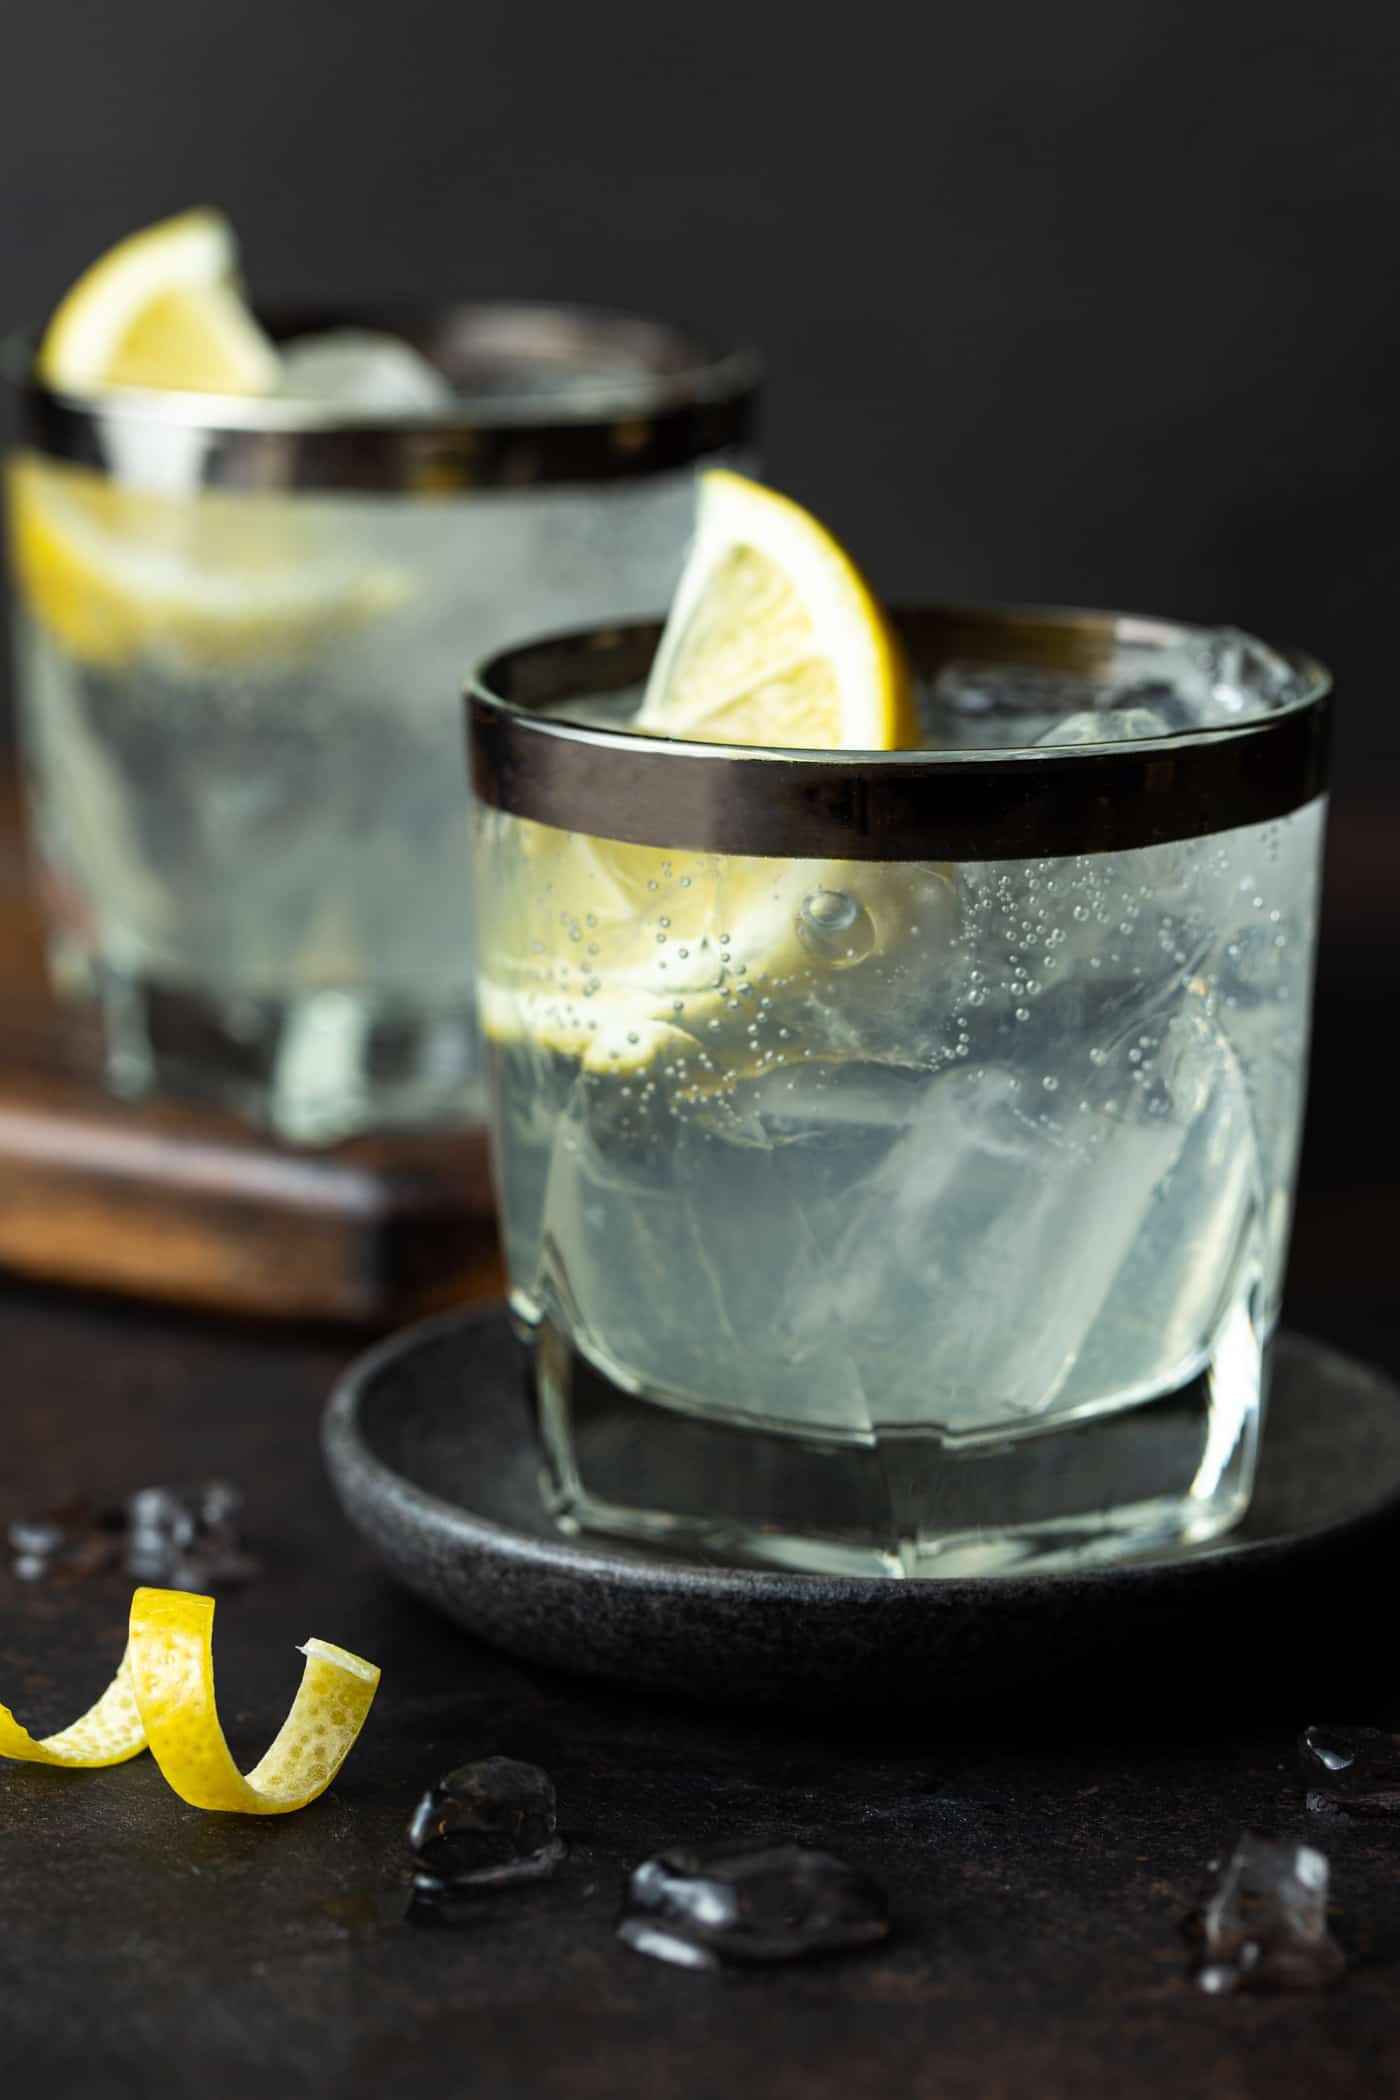 Two lowball glasses filled with Elderflower Vodka Sodas. Garnished with fresh lemon wedges and a lemon peel twist.